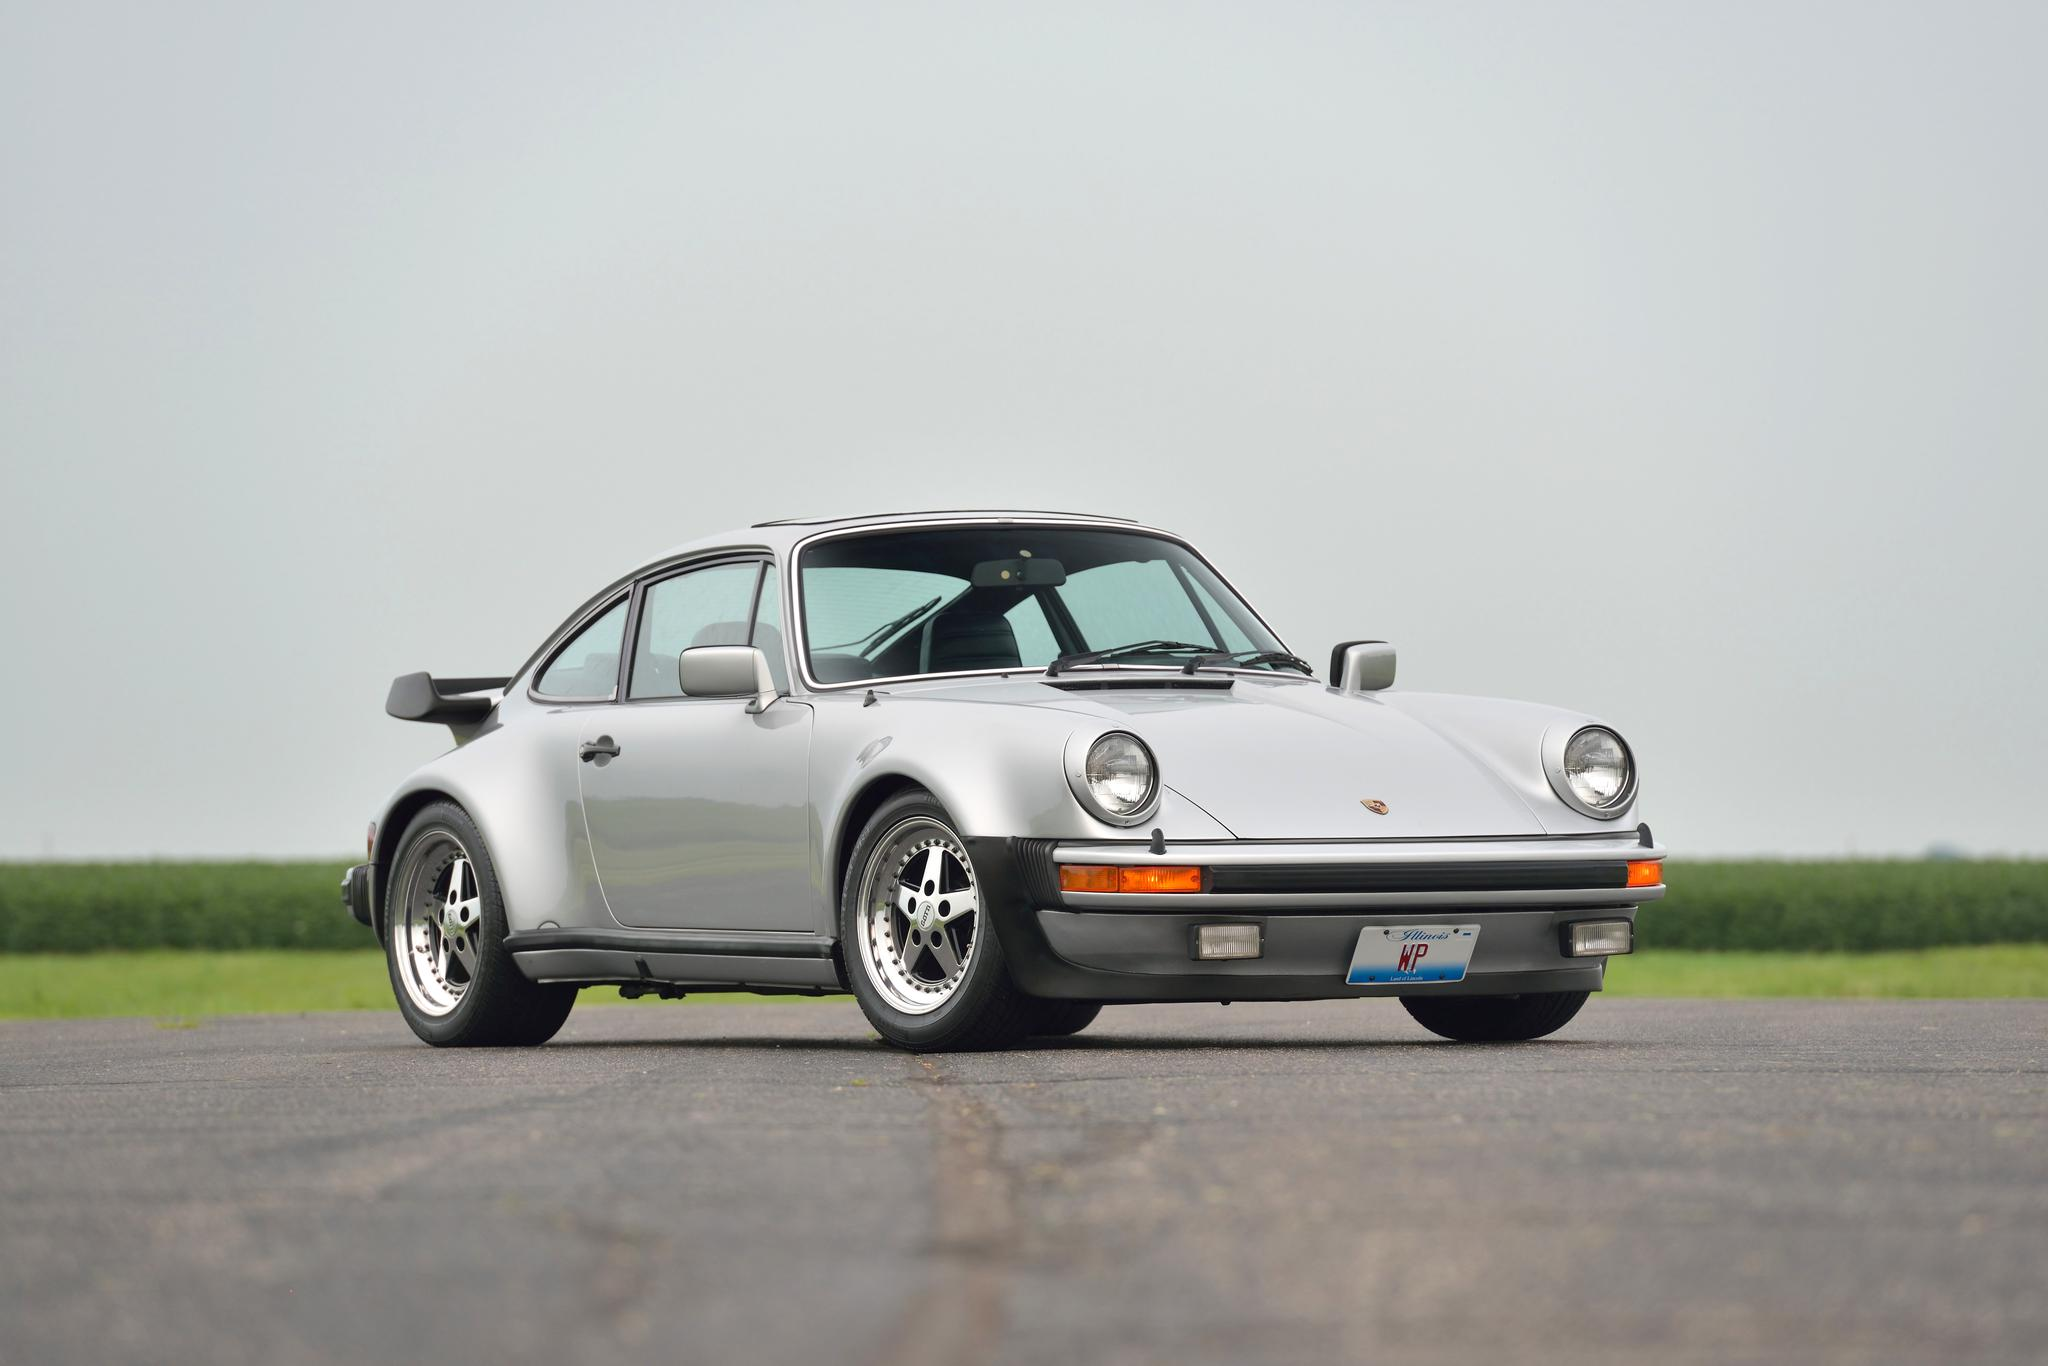 Walter Paytons Baby His Porsche 930 Turbo Is For Sale